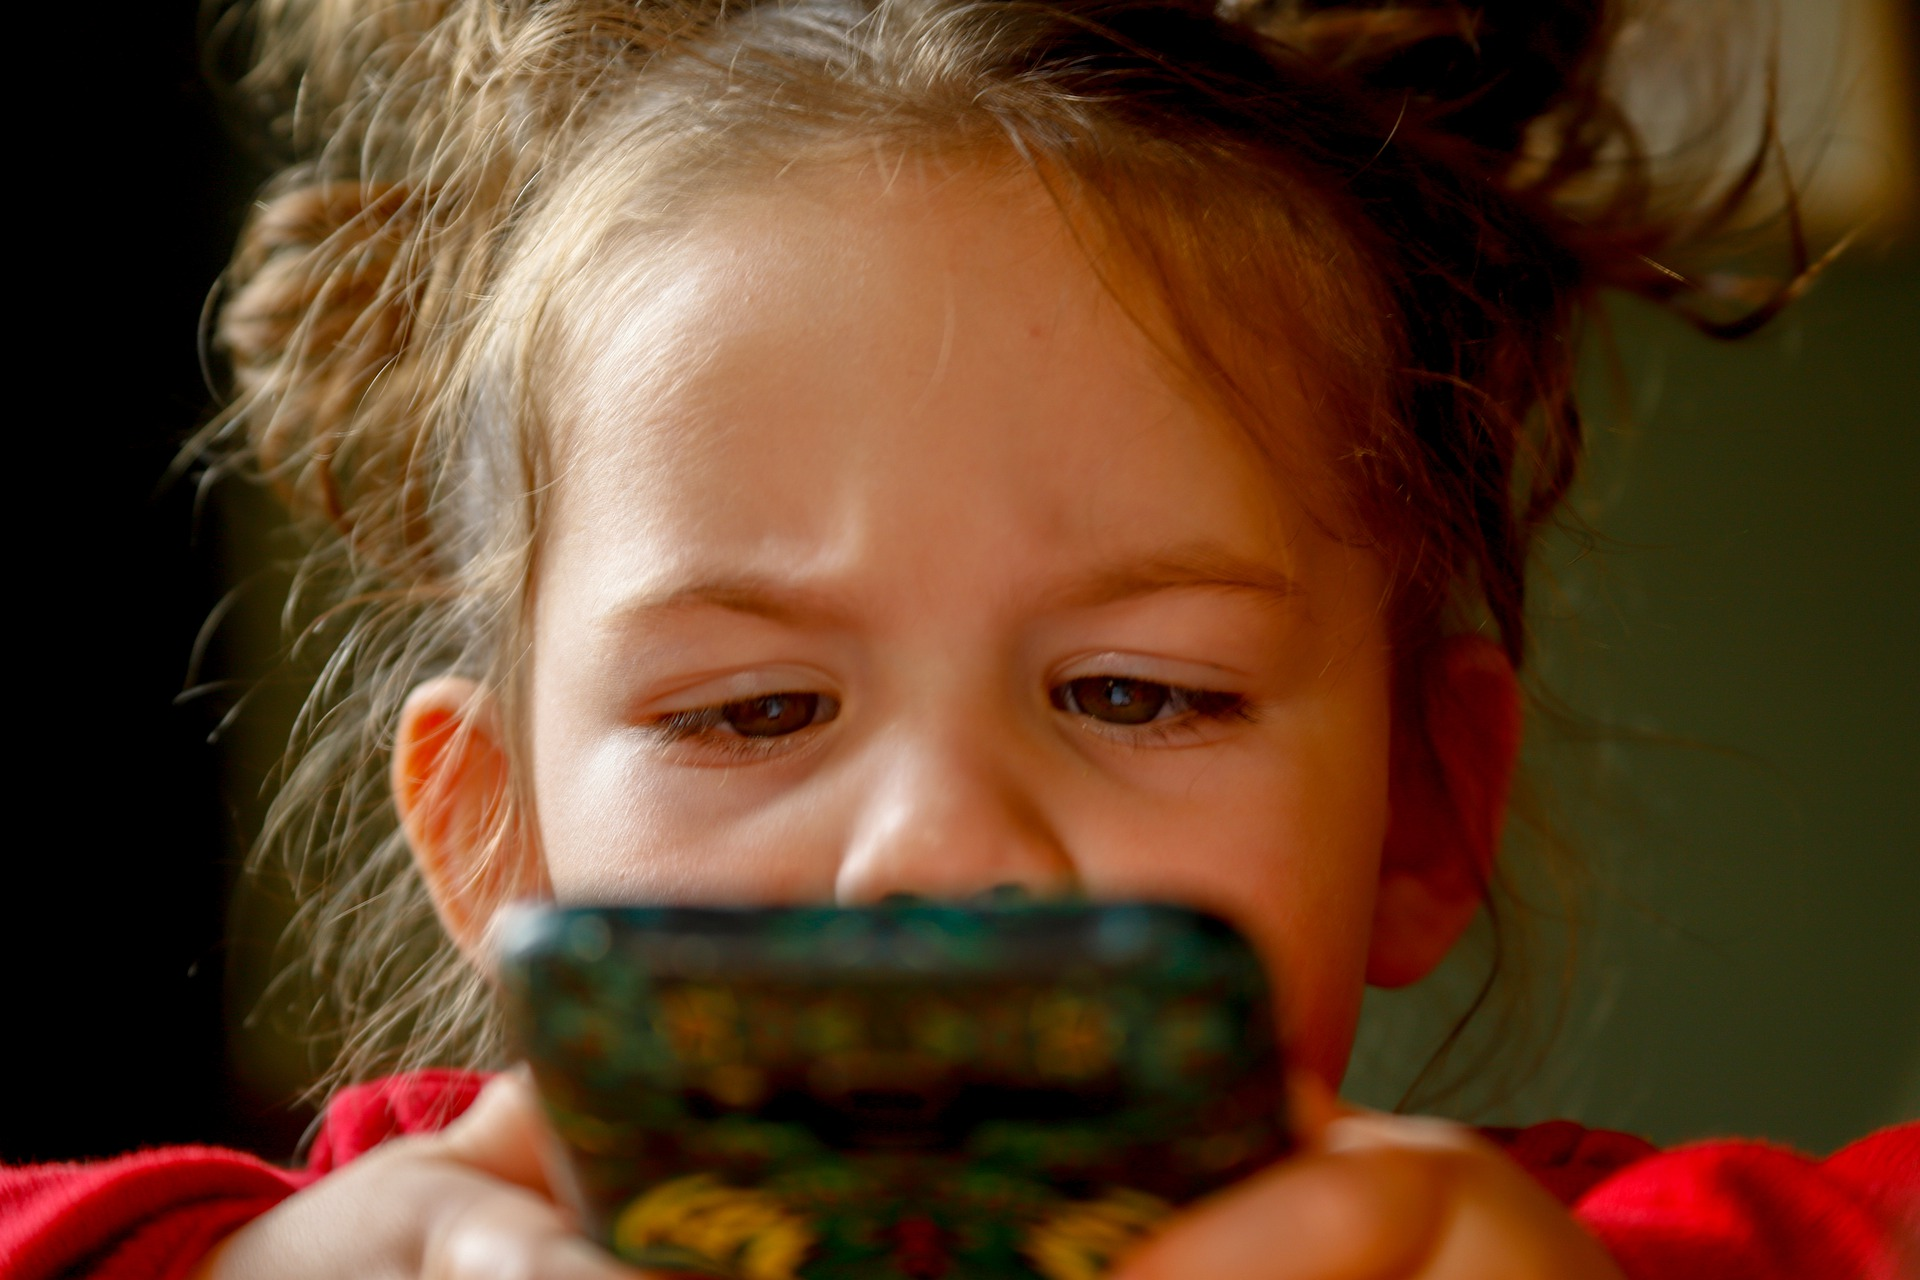 Young girl playing with phone